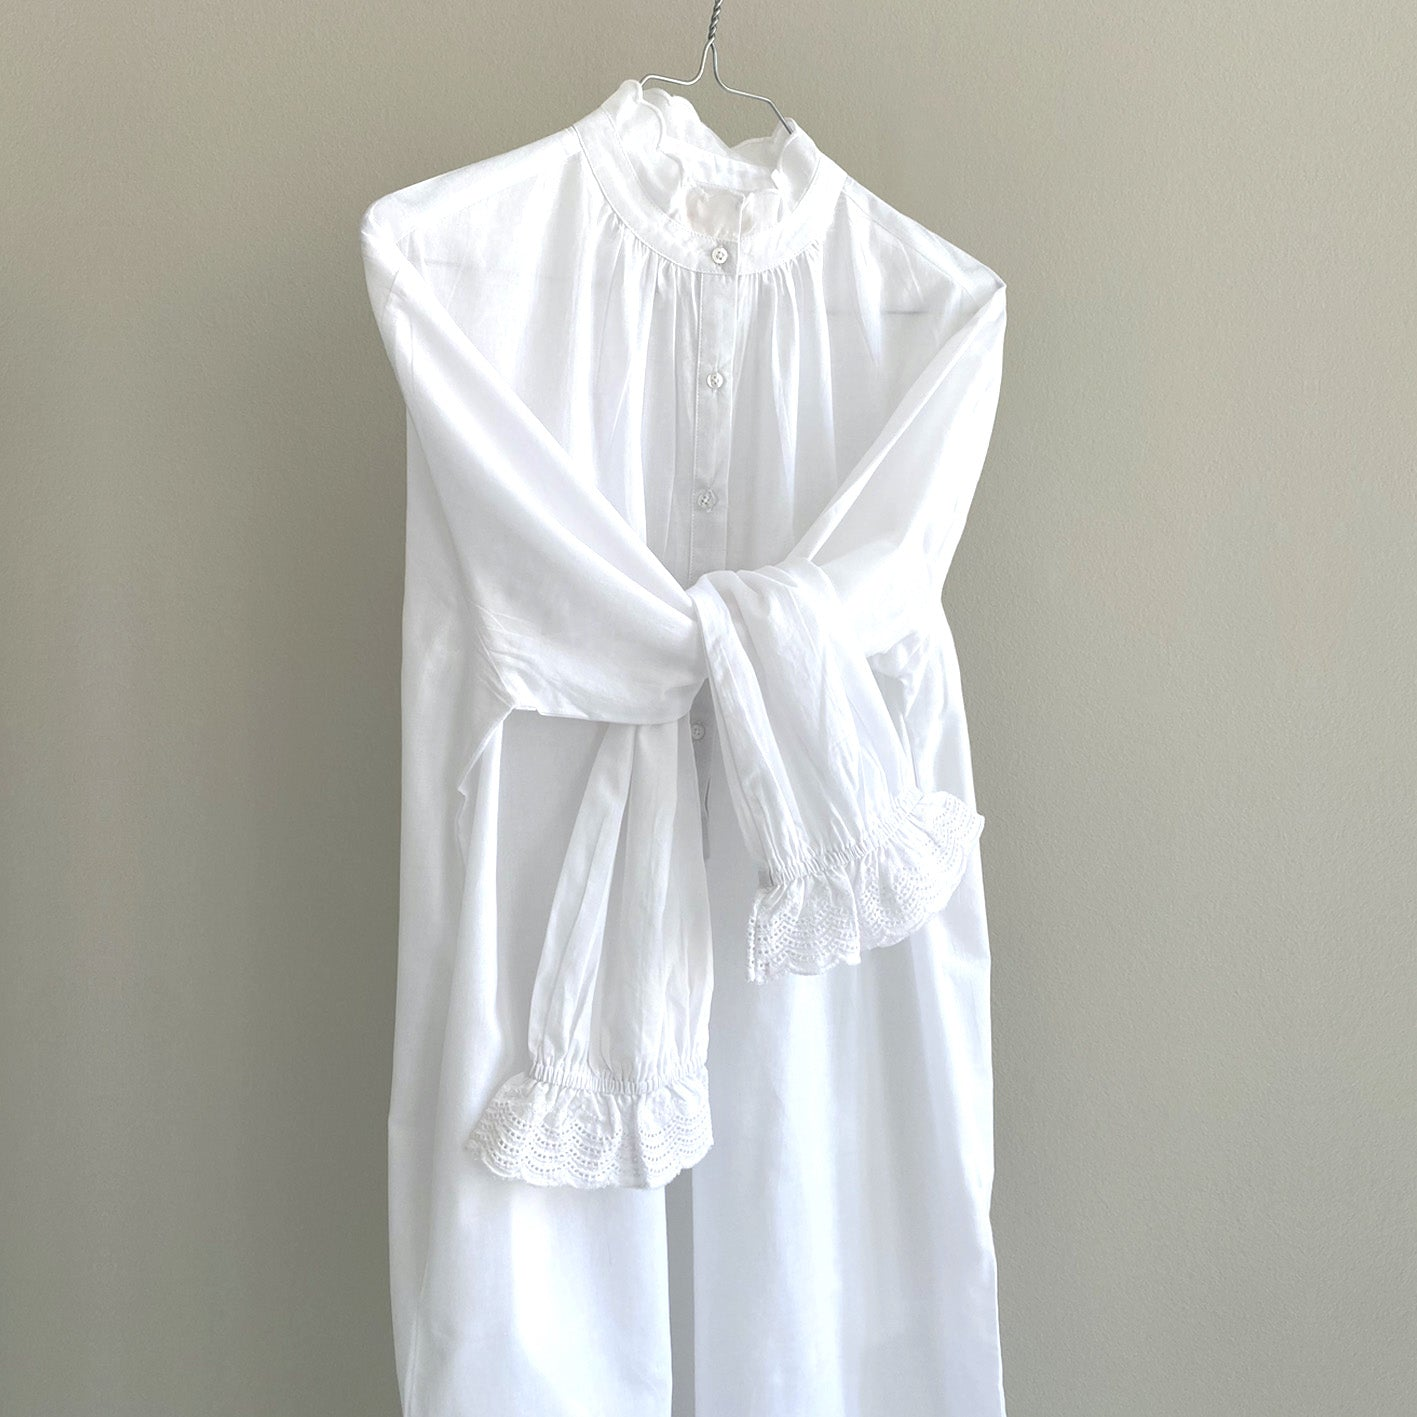 DRESS // WOMEN // WHITE COTTON & LACE